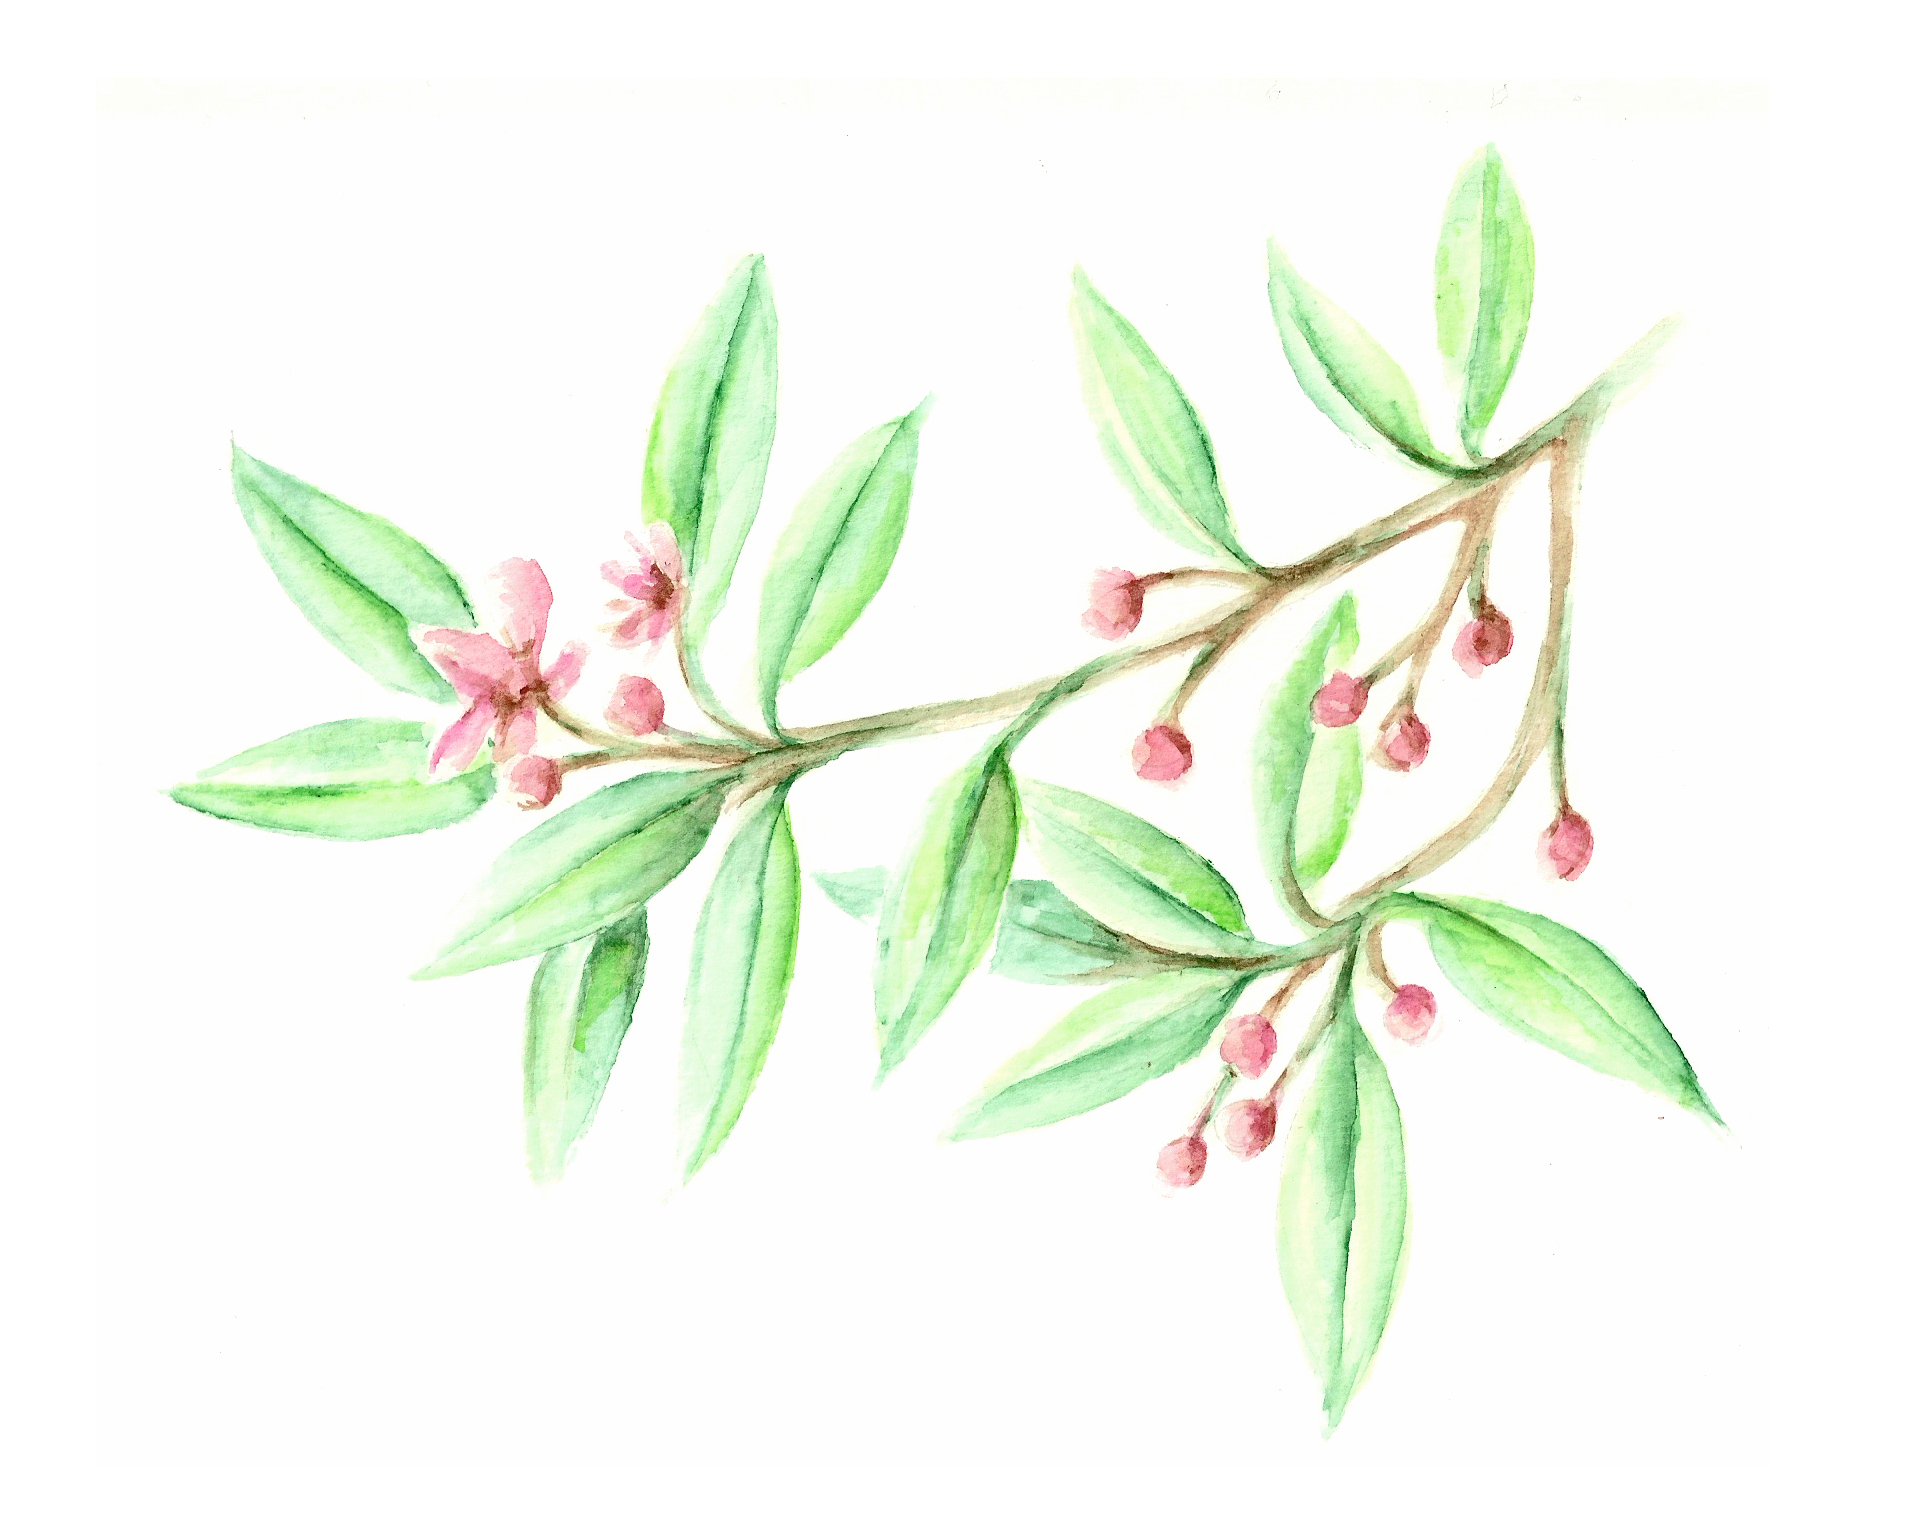 Anise Tree illustration